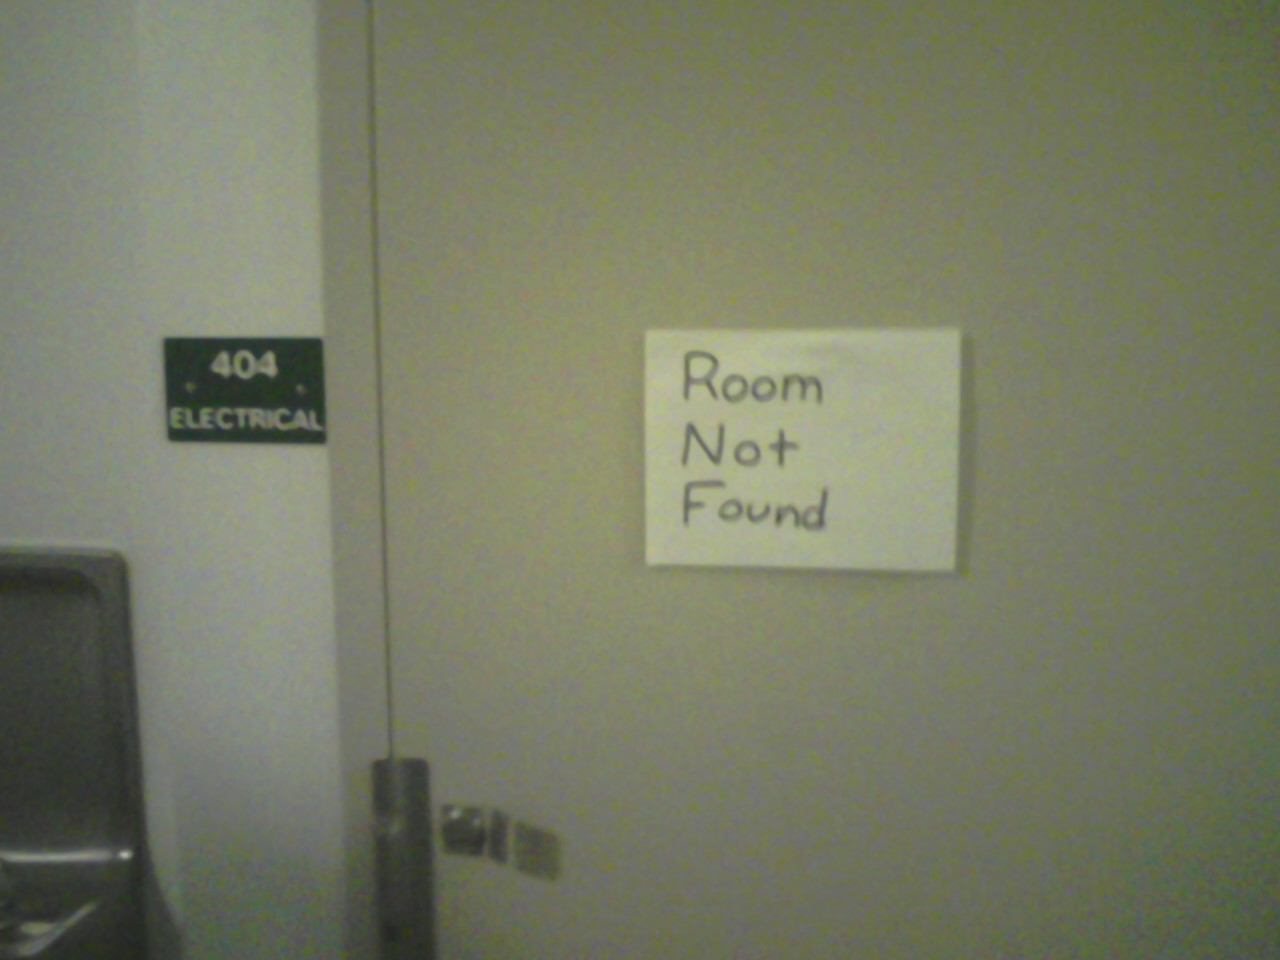 room not found - pichars.org